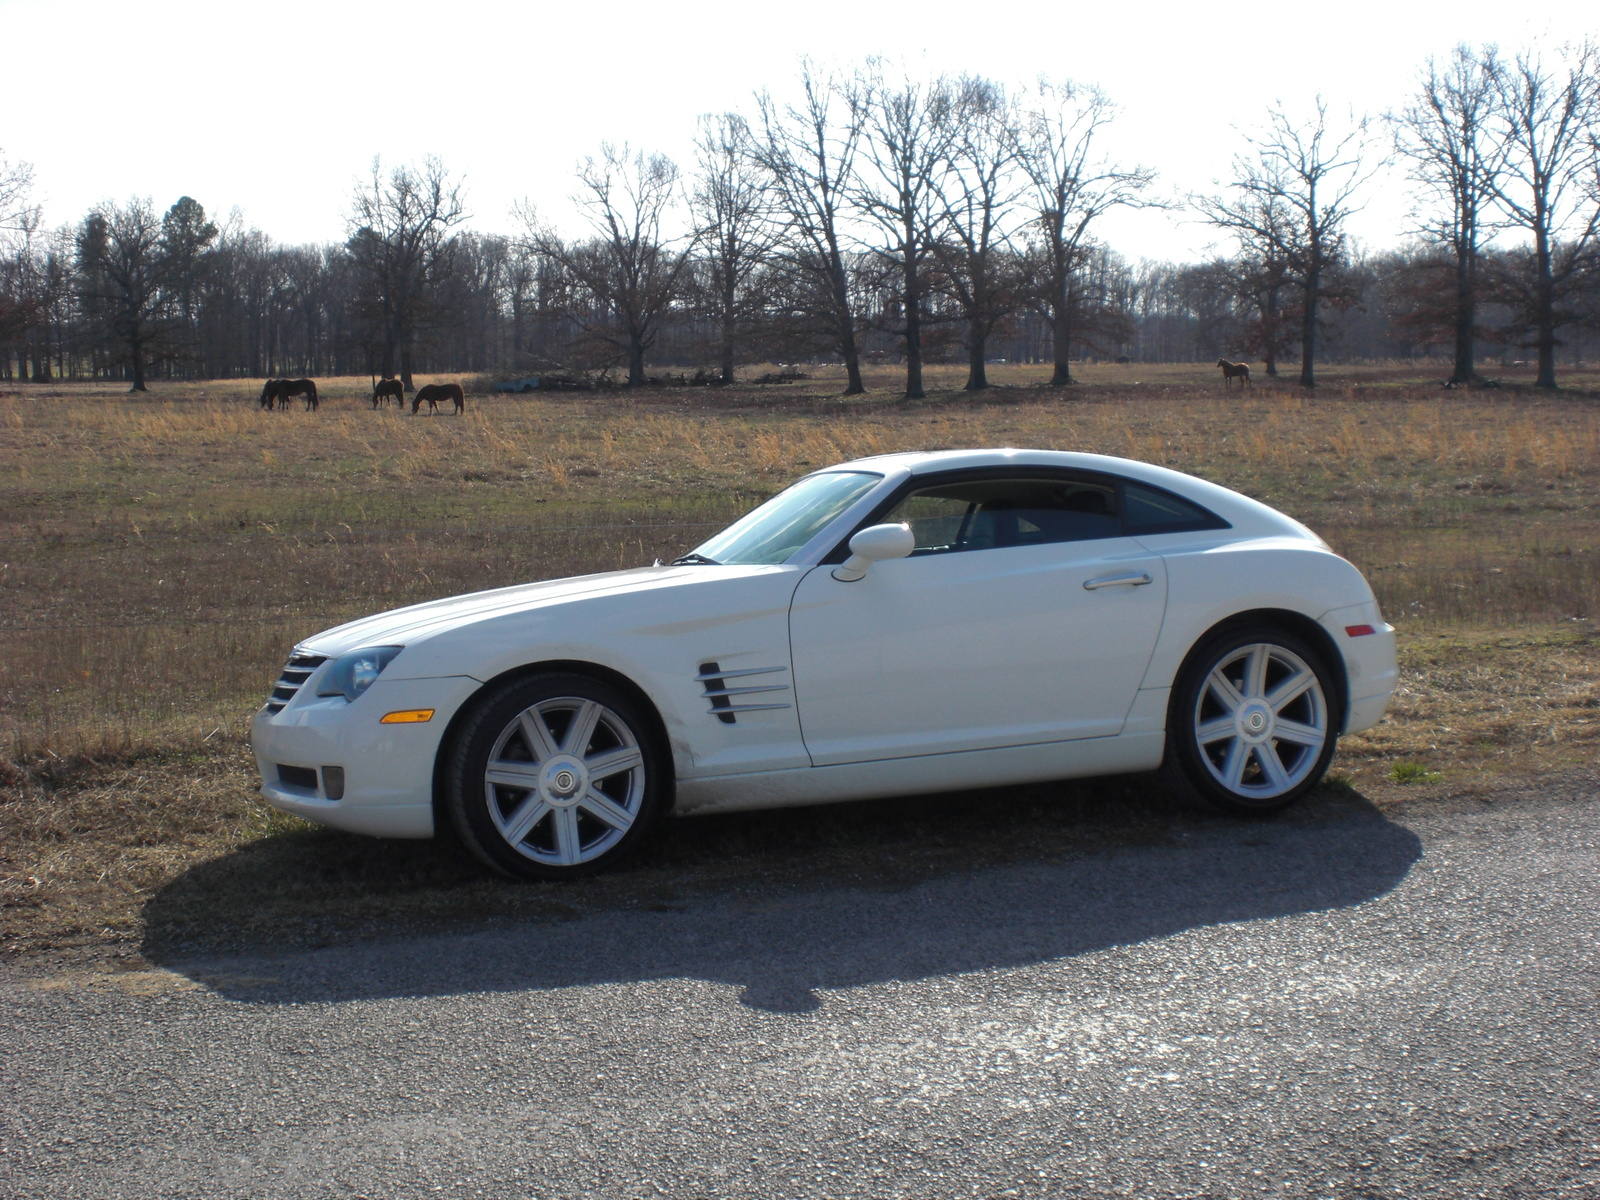 2004 chrysler crossfire exterior pictures cargurus. Cars Review. Best American Auto & Cars Review